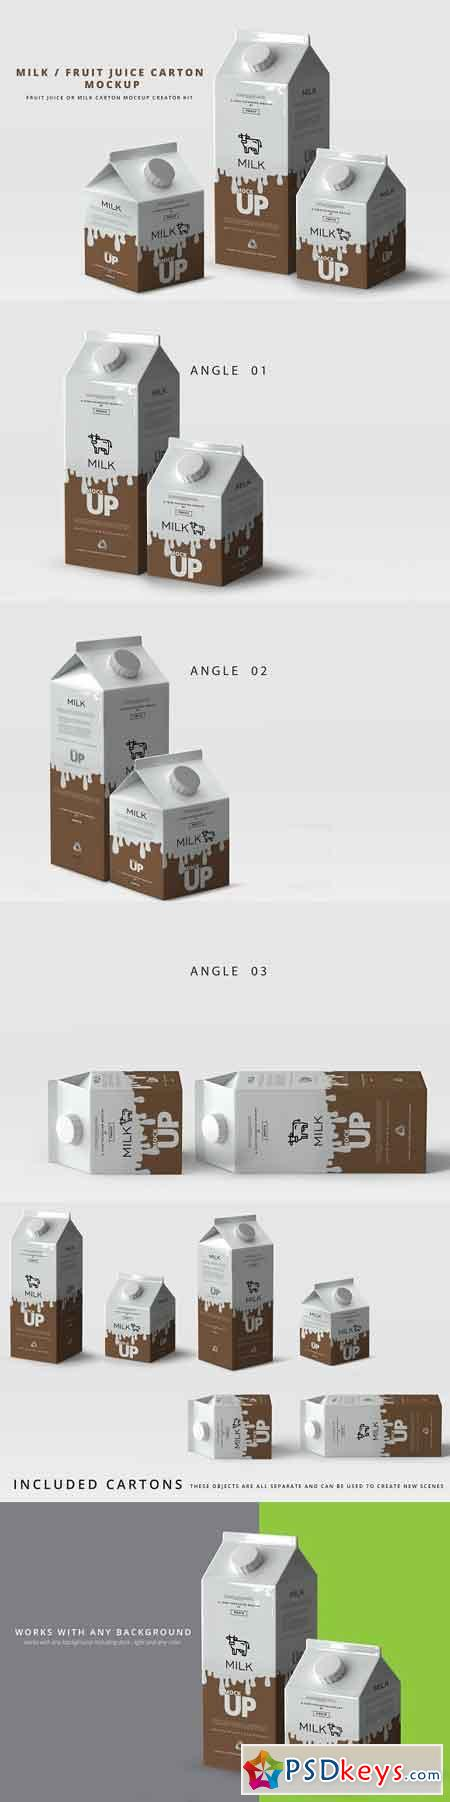 Milk Fruit Juice Carton Mockup 2964103